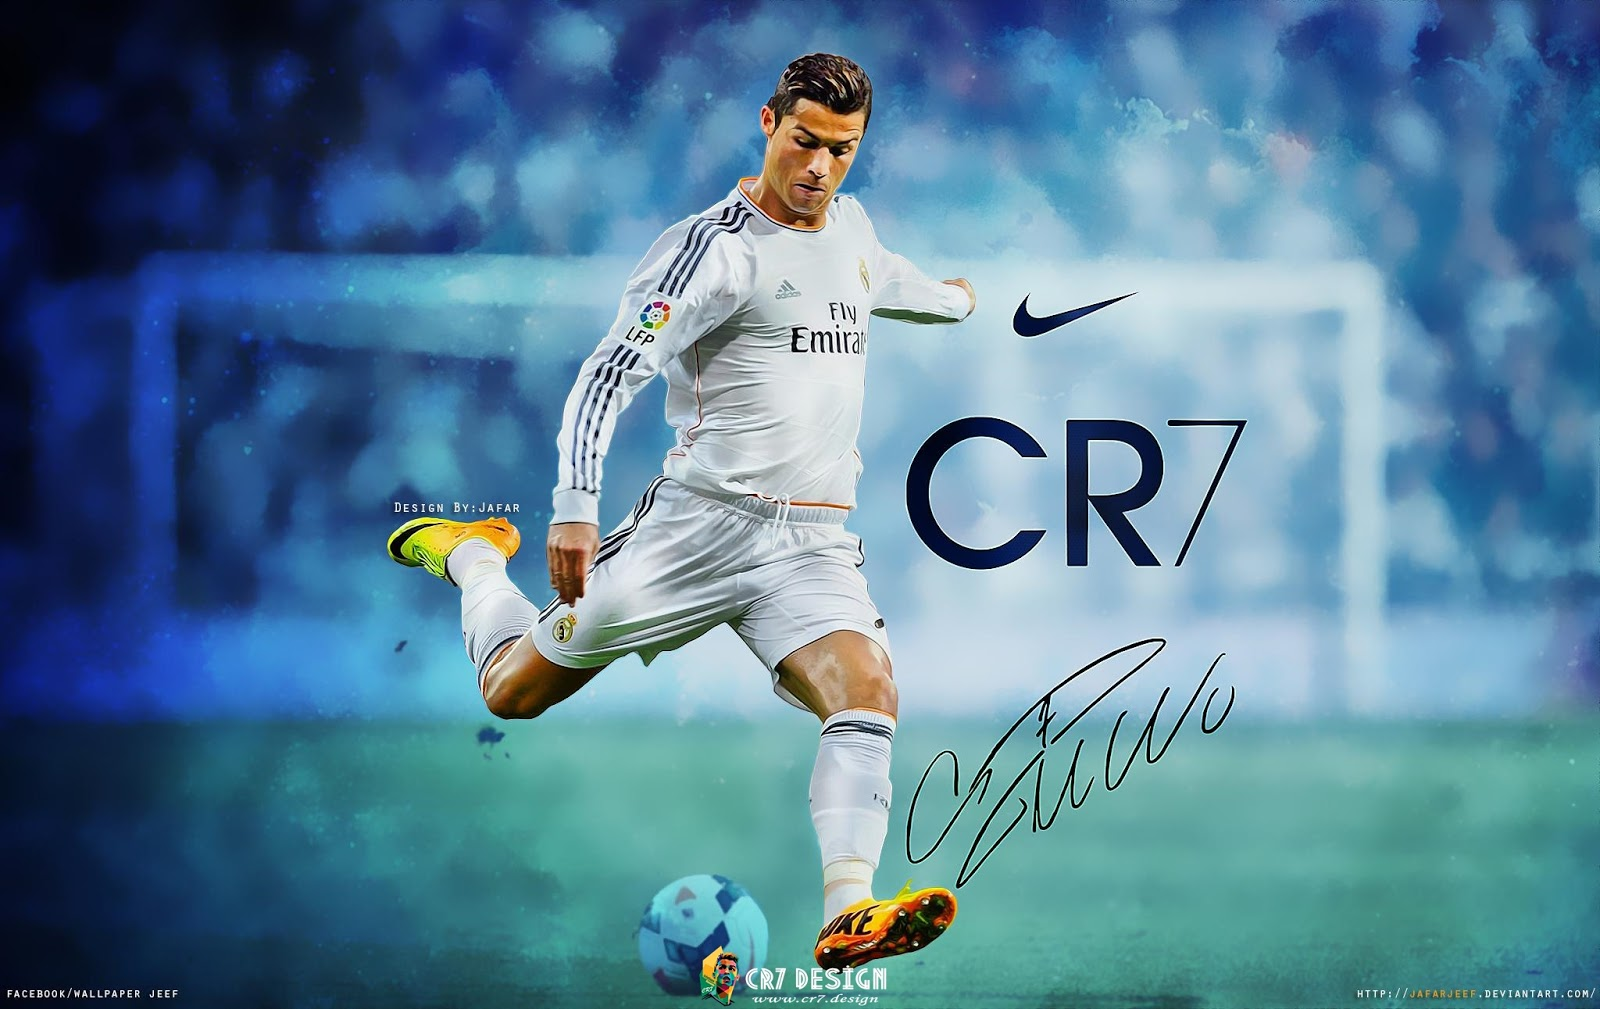 ciristiano-ronaldo-wallpaper-design-123